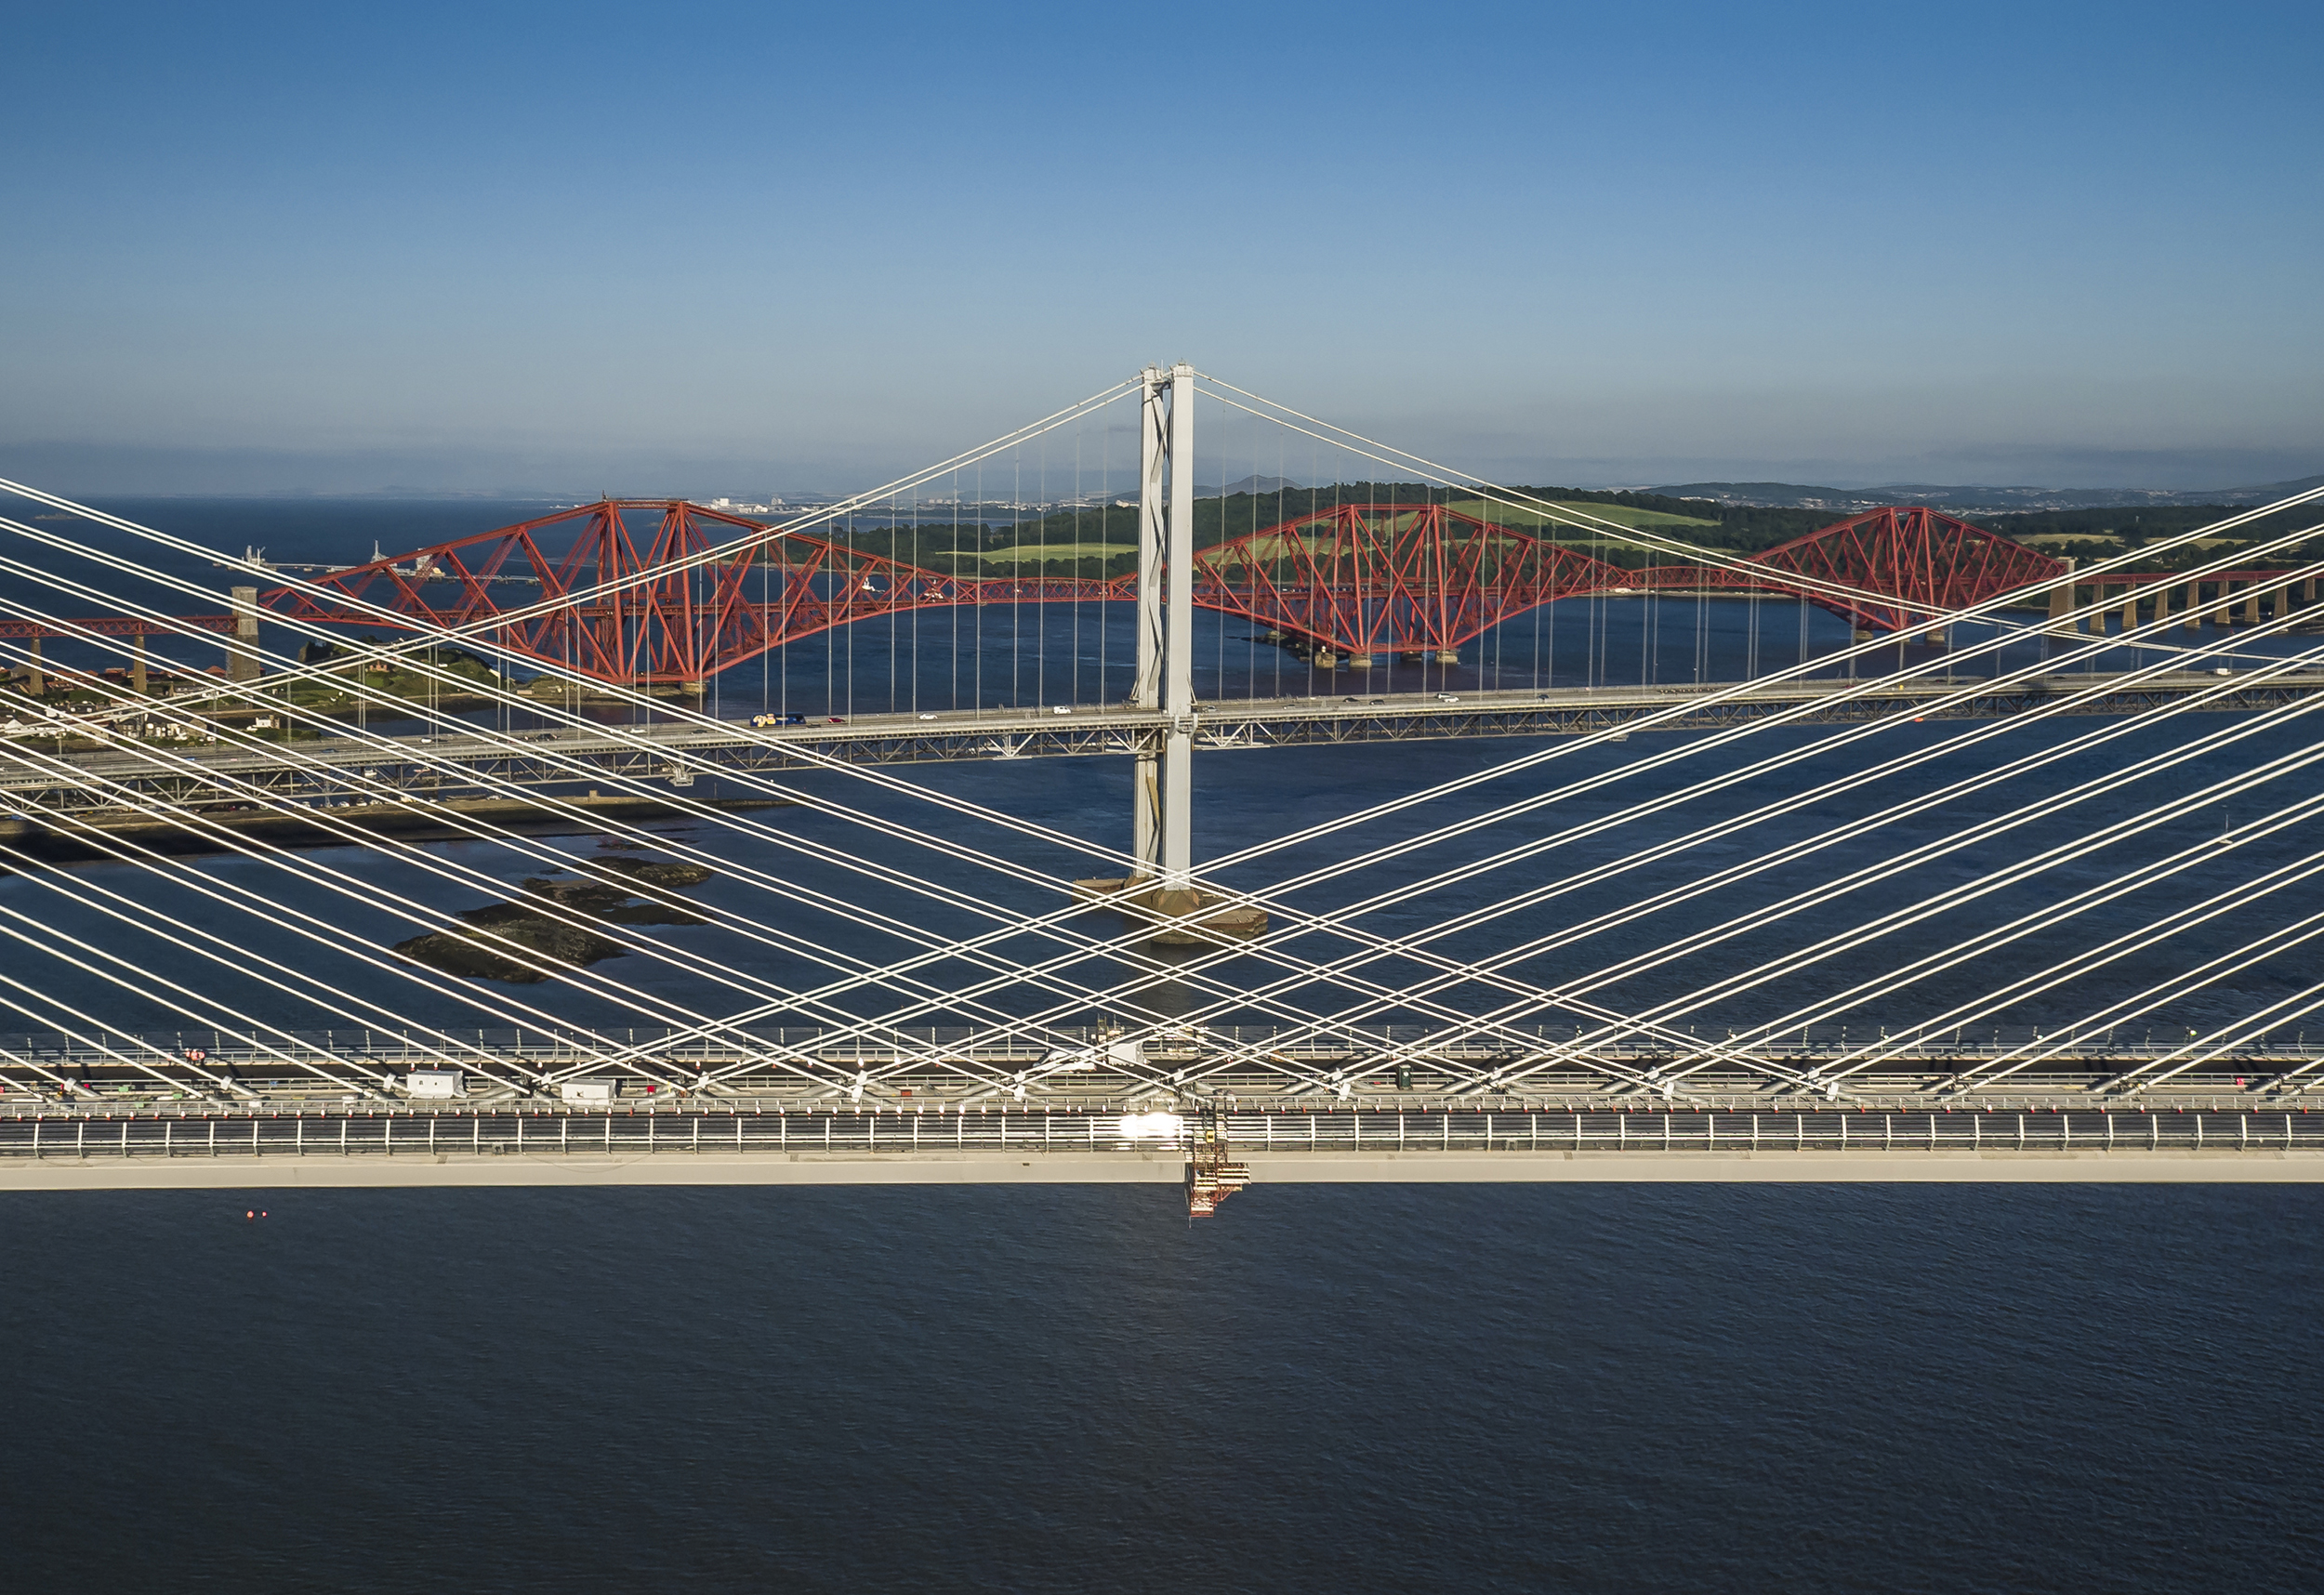 Dissing_Weitling_Queensferry_Crossing_Visit_Scotland_03_2500.jpg